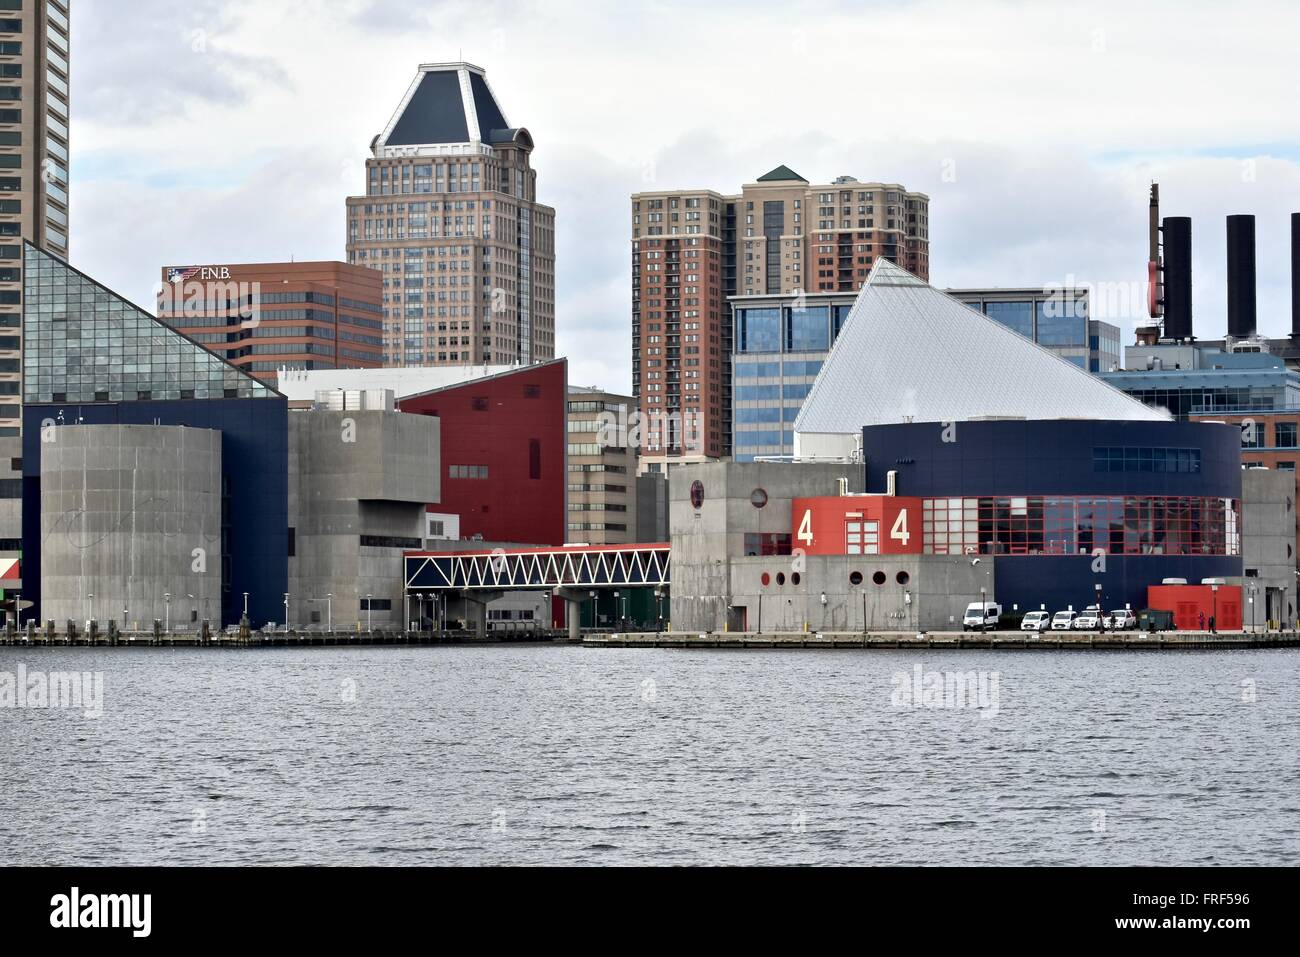 The National Aquarium at the Baltimore inner harbor - Stock Image